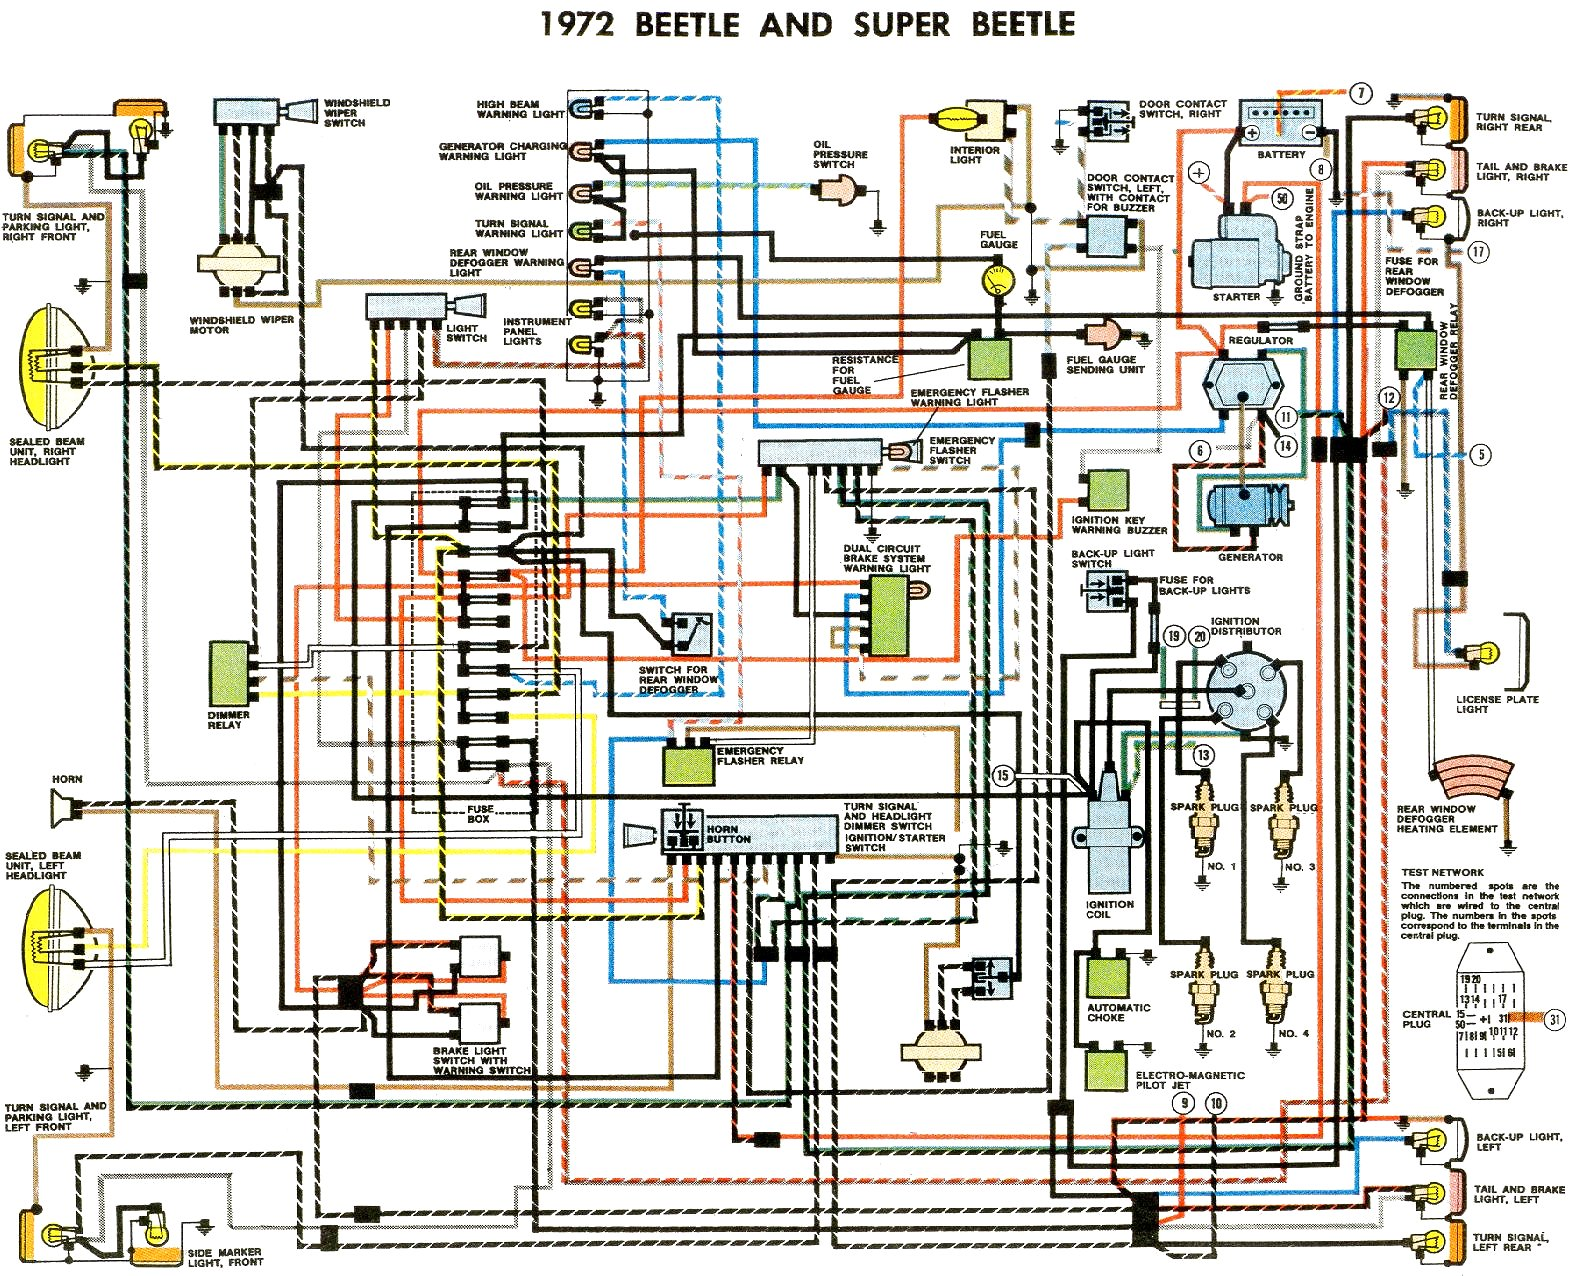 1984 Vw Rabbit Gti Engine Wiring Diagram Largest 2001 Jetta 1 8t Images Gallery